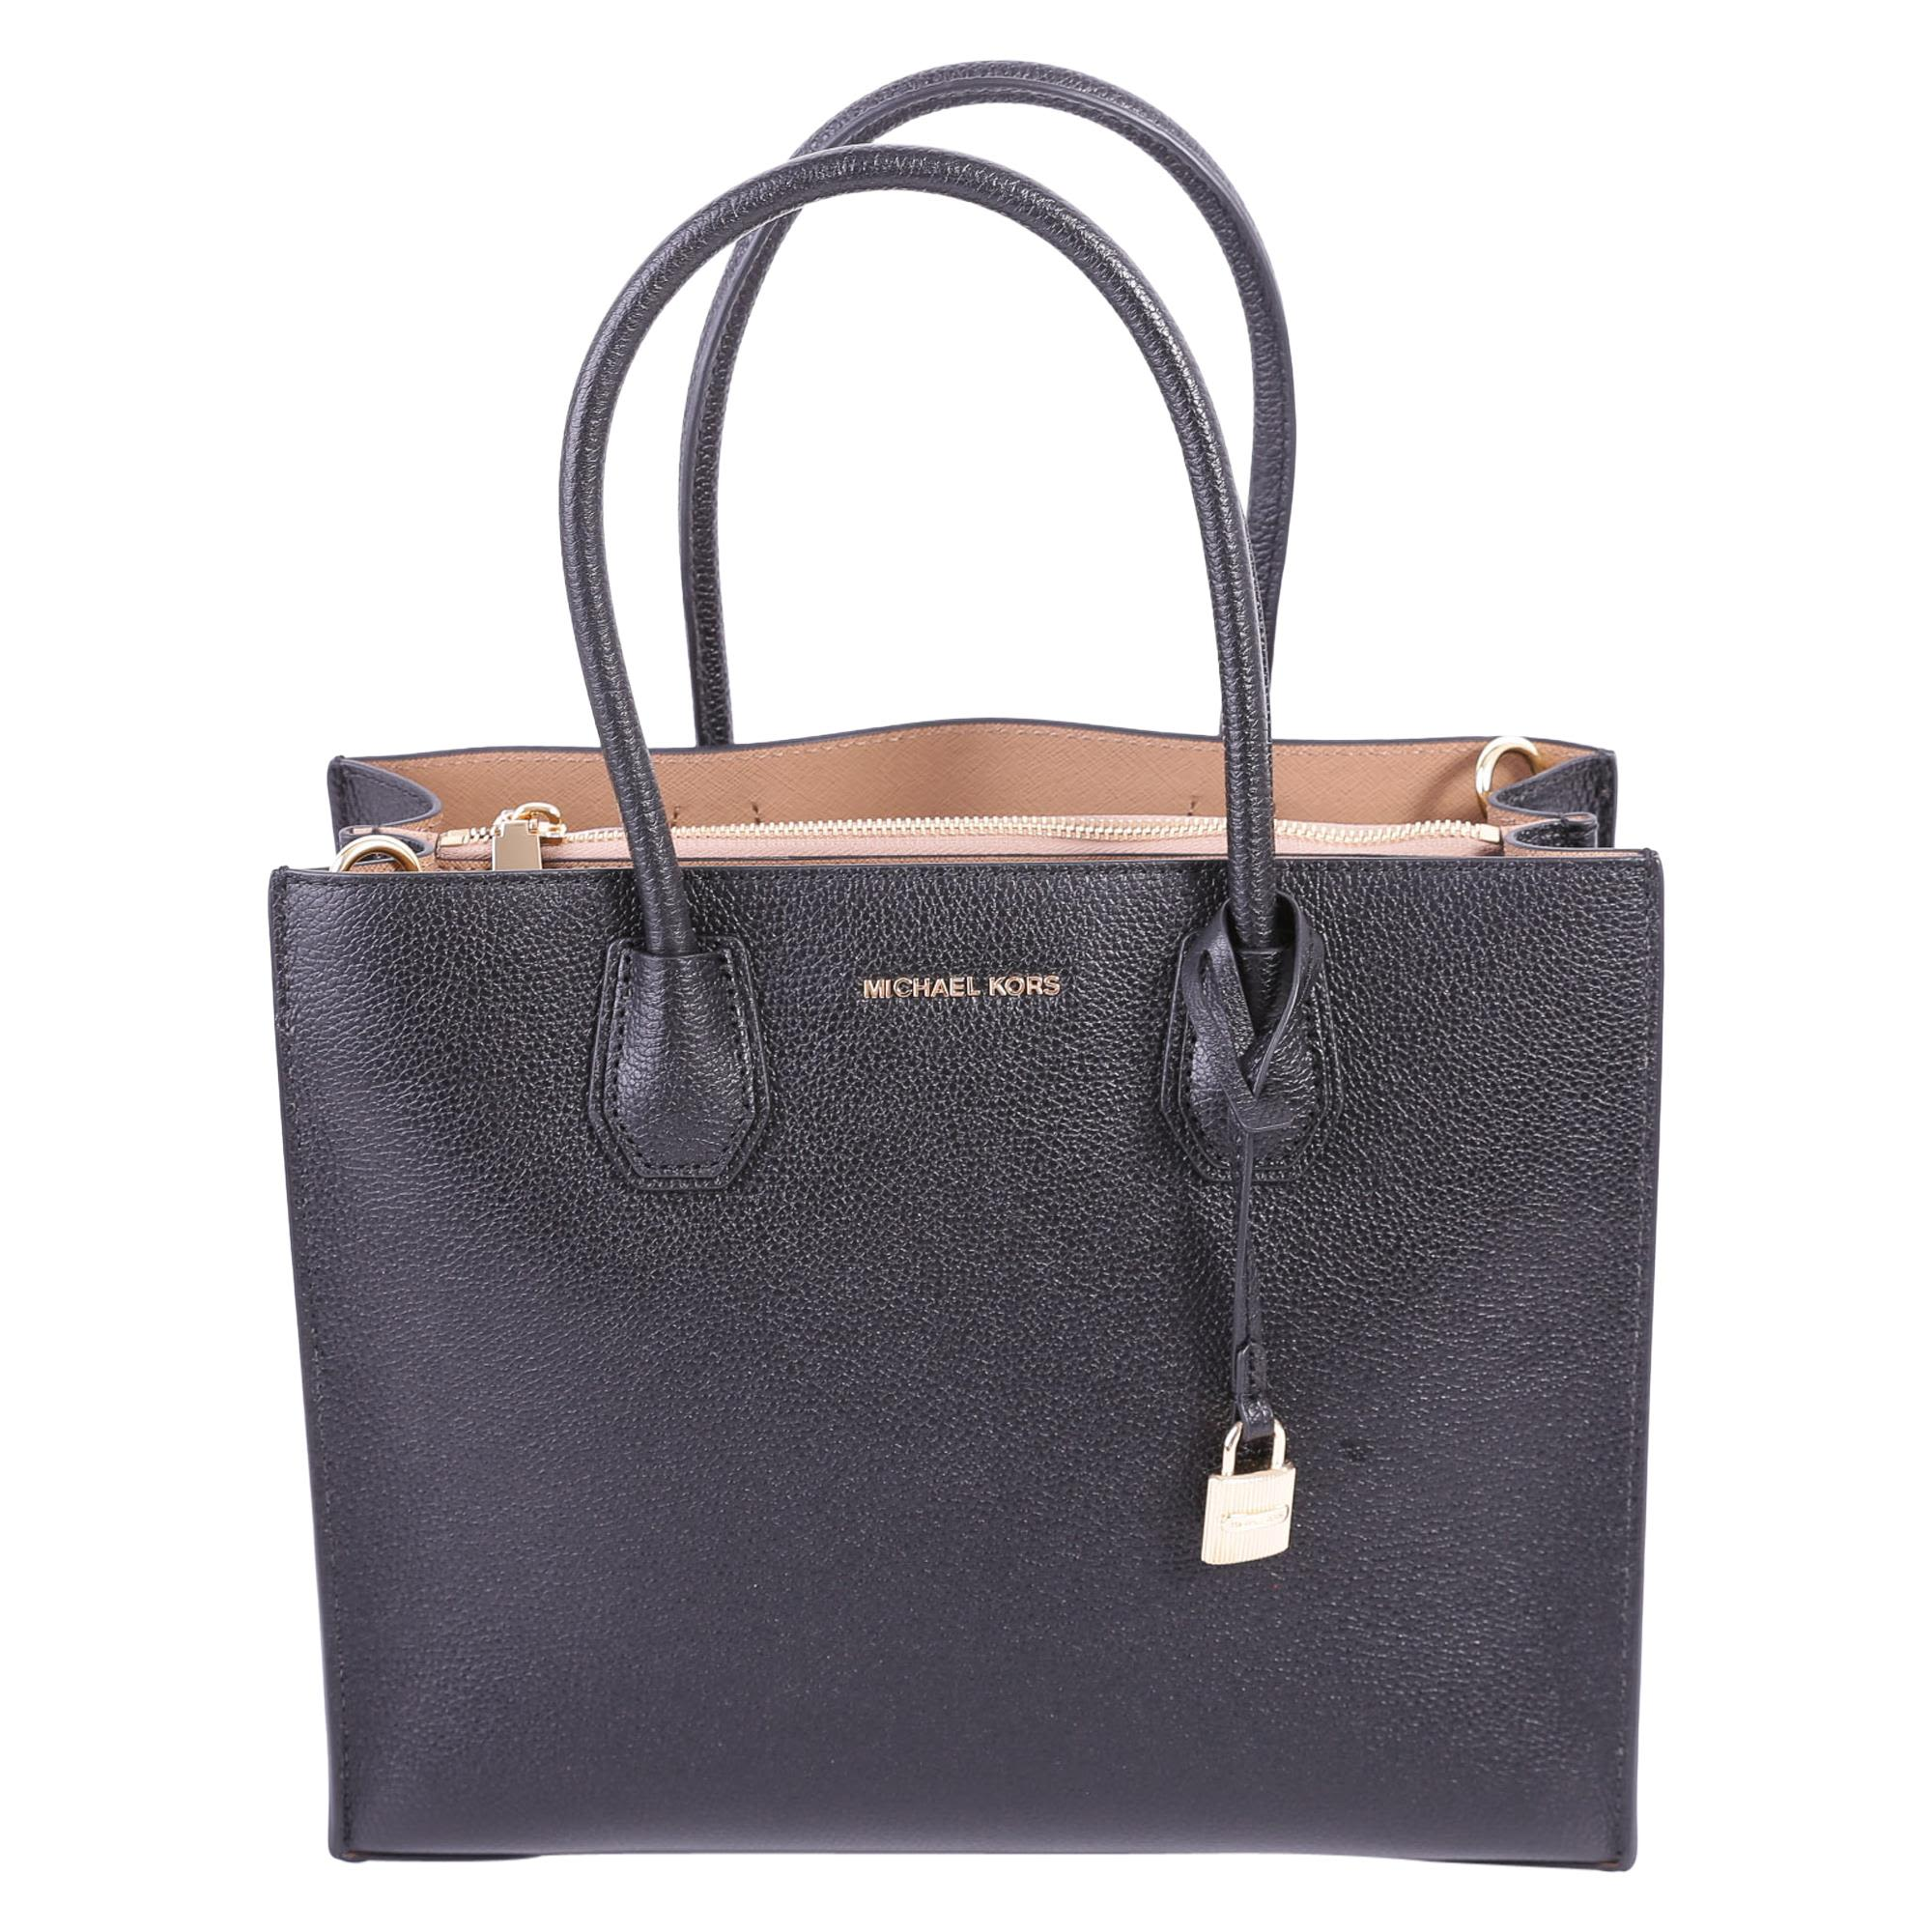 MICHAEL Michael Kors Mercer Large Tote Tumbled Leather Bag